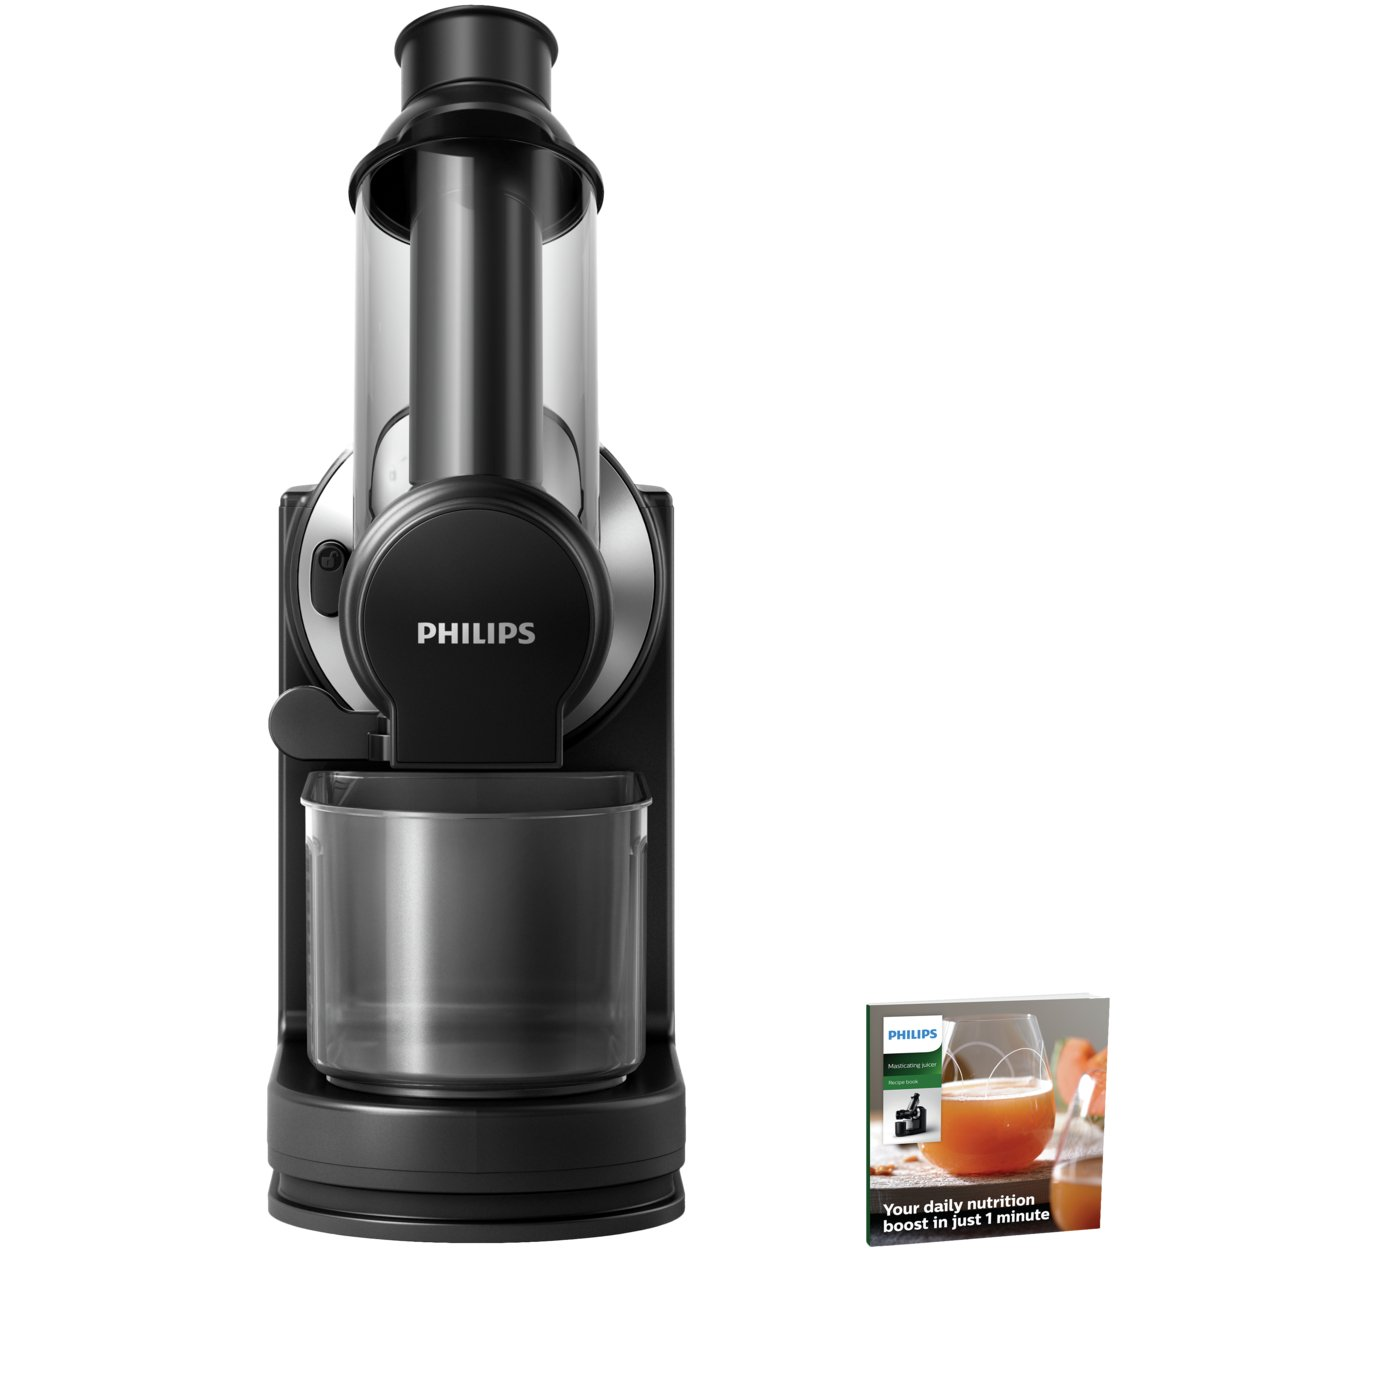 Slow Juicer Philips Hr1894 : Philips viva HR1889/71 Slow Juicer ?239.99 Gay Times